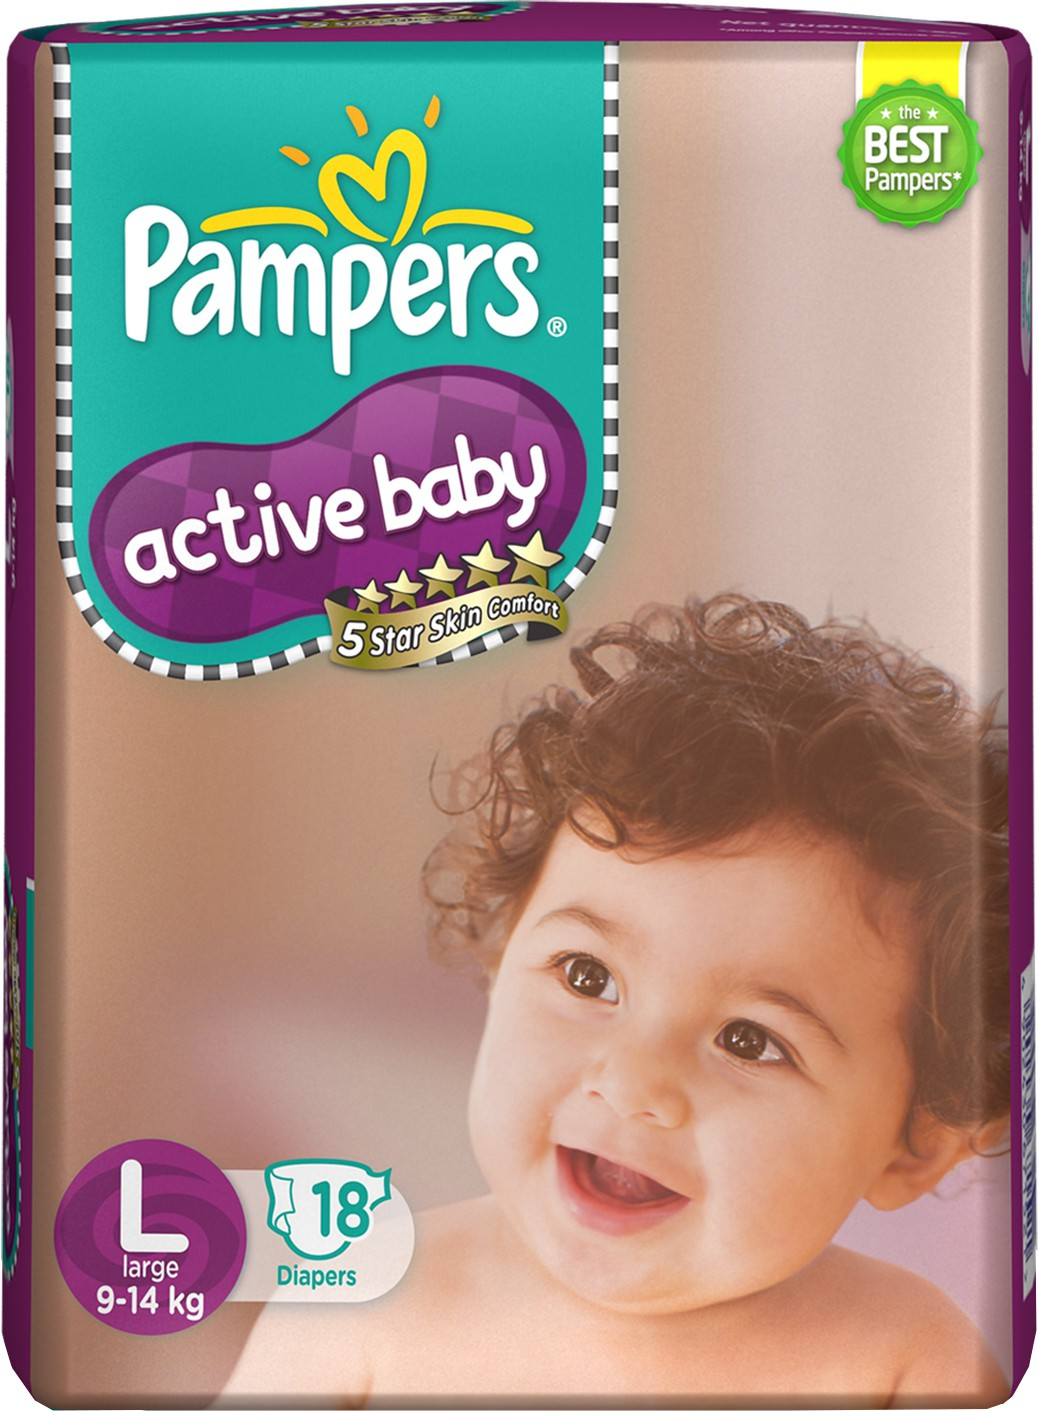 Pampers Active Baby Diapers - Large (18 Pieces)